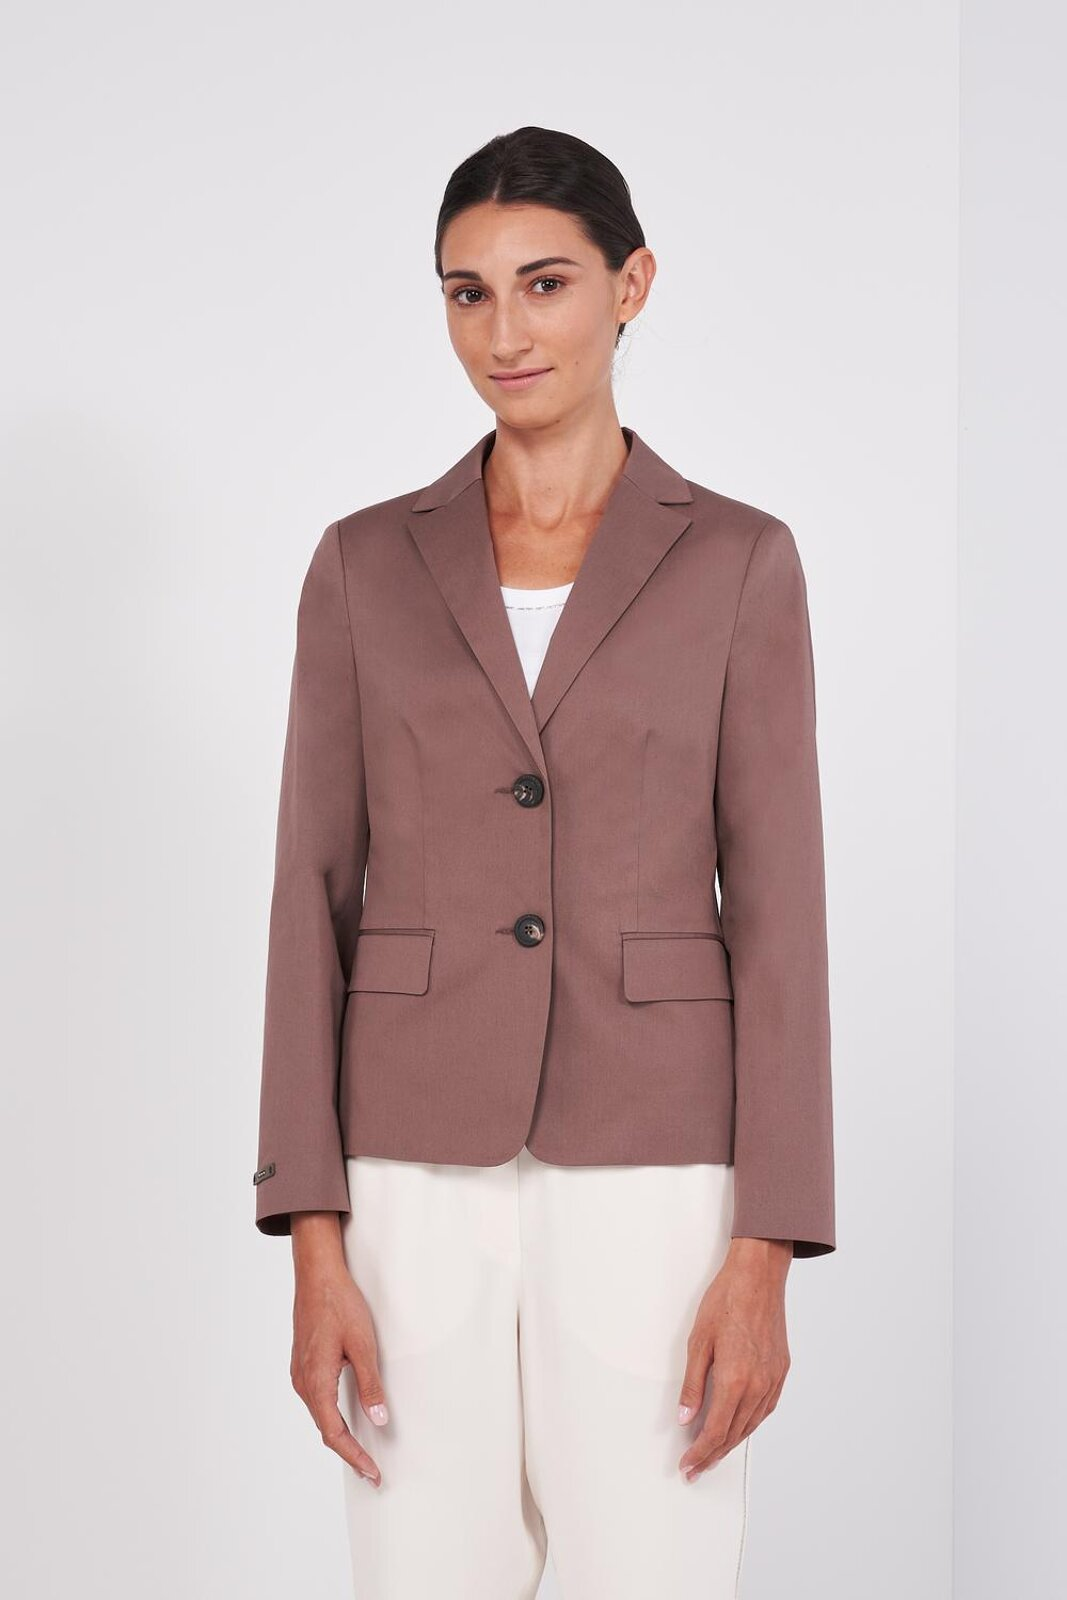 Long Sleeve Cotton Single Breasted Blazer Jacket. Two Front Buttons, Side Pockets, Tight Fit. - Peserico